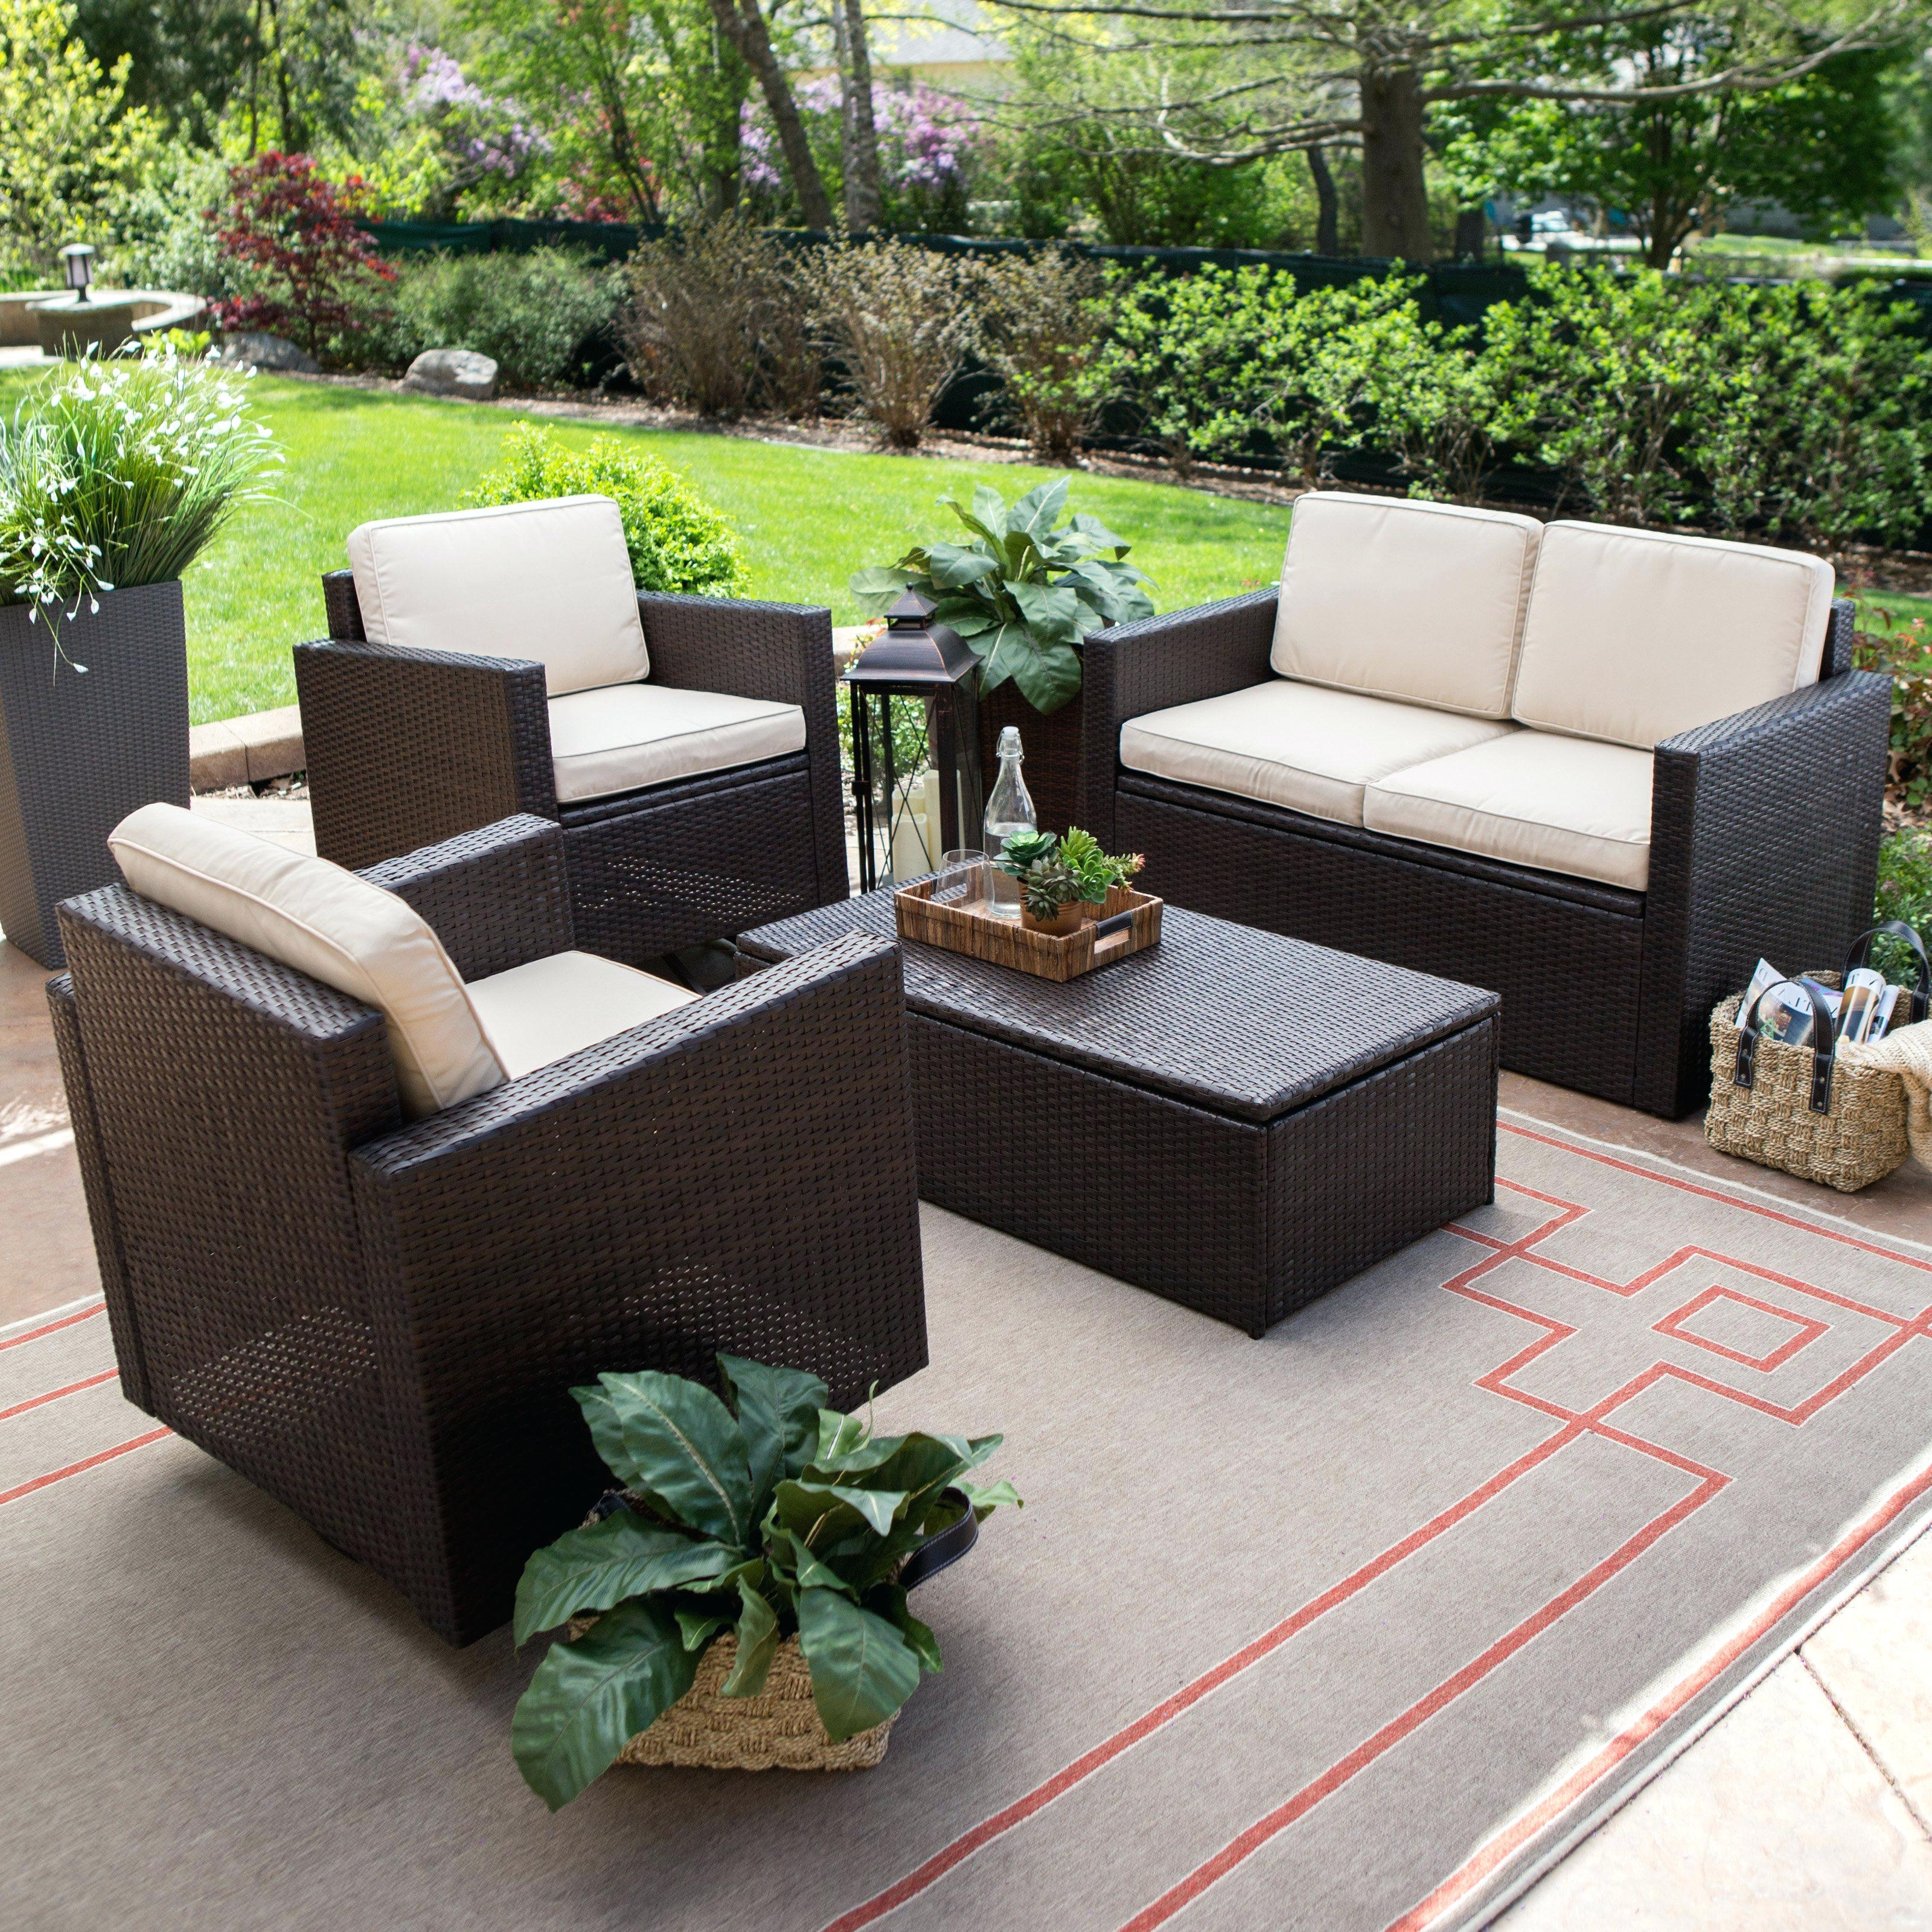 2019 Patio Conversation Sets Coral Coast Wicker 4 Piece Conversation Set In Patio Sectional Conversation Sets (View 4 of 20)